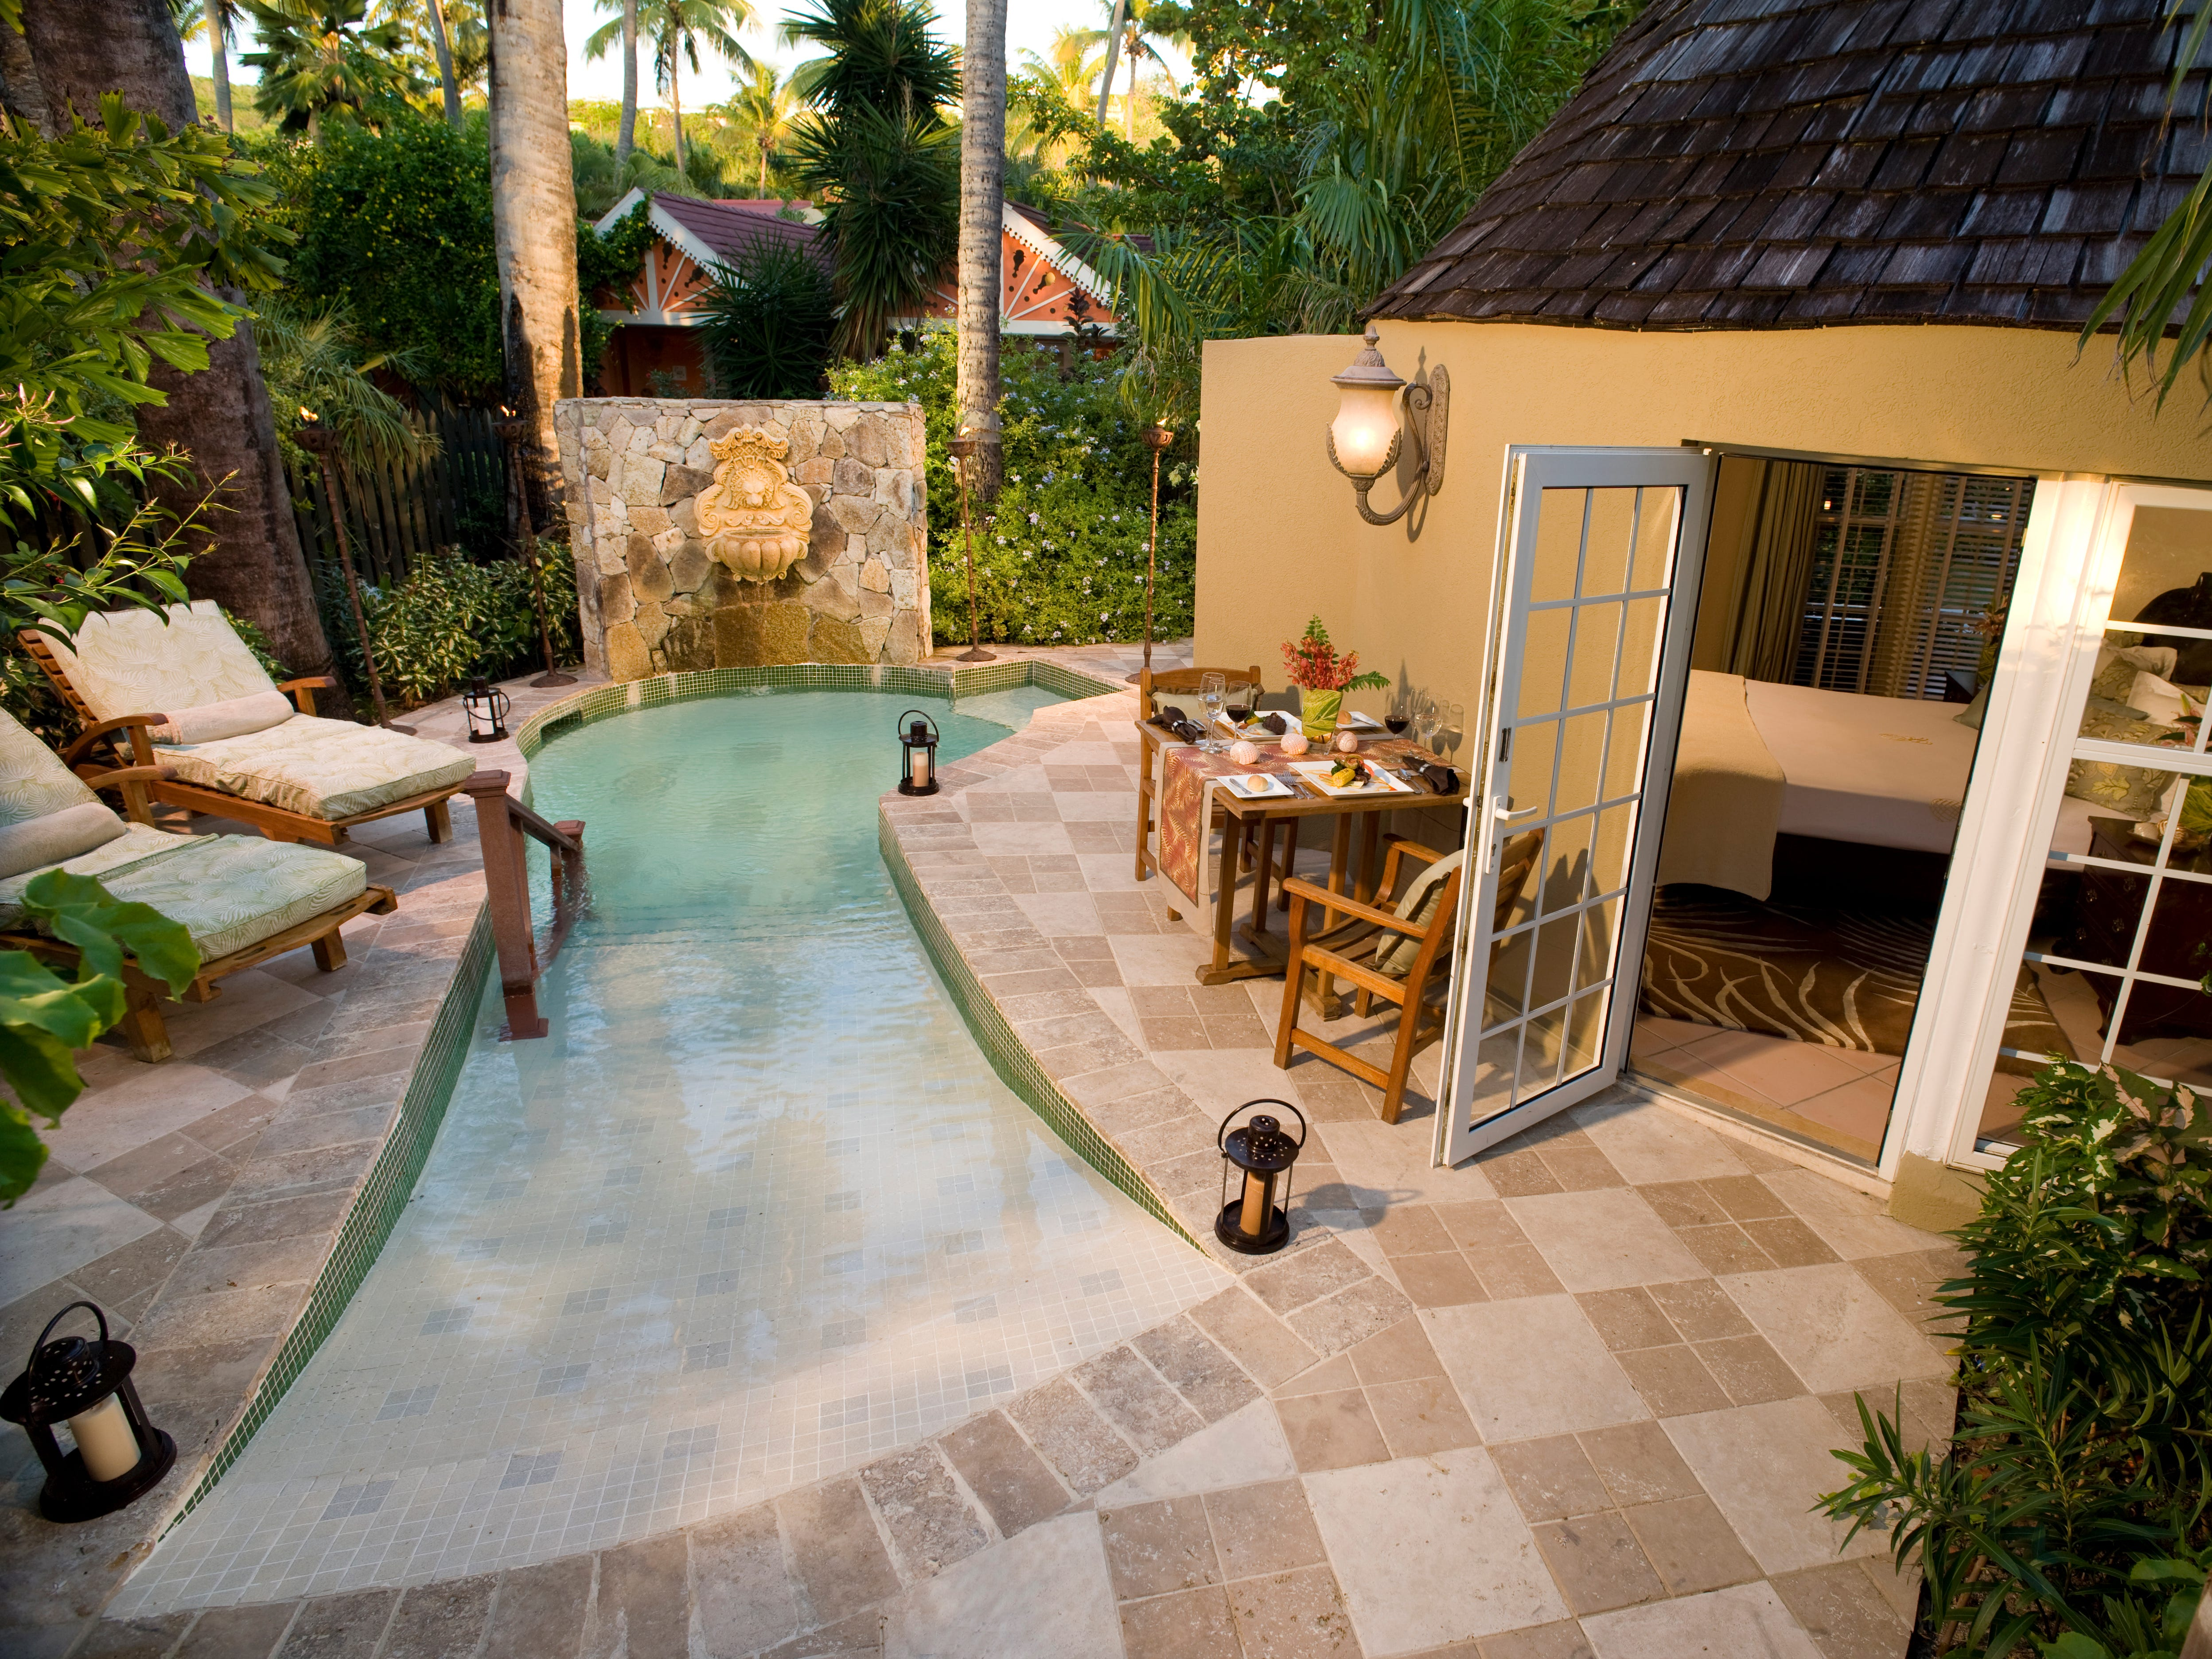 The villas at Sandals Grande Antigua come with plunge pools, whirlpools and butlers who keep them neat.